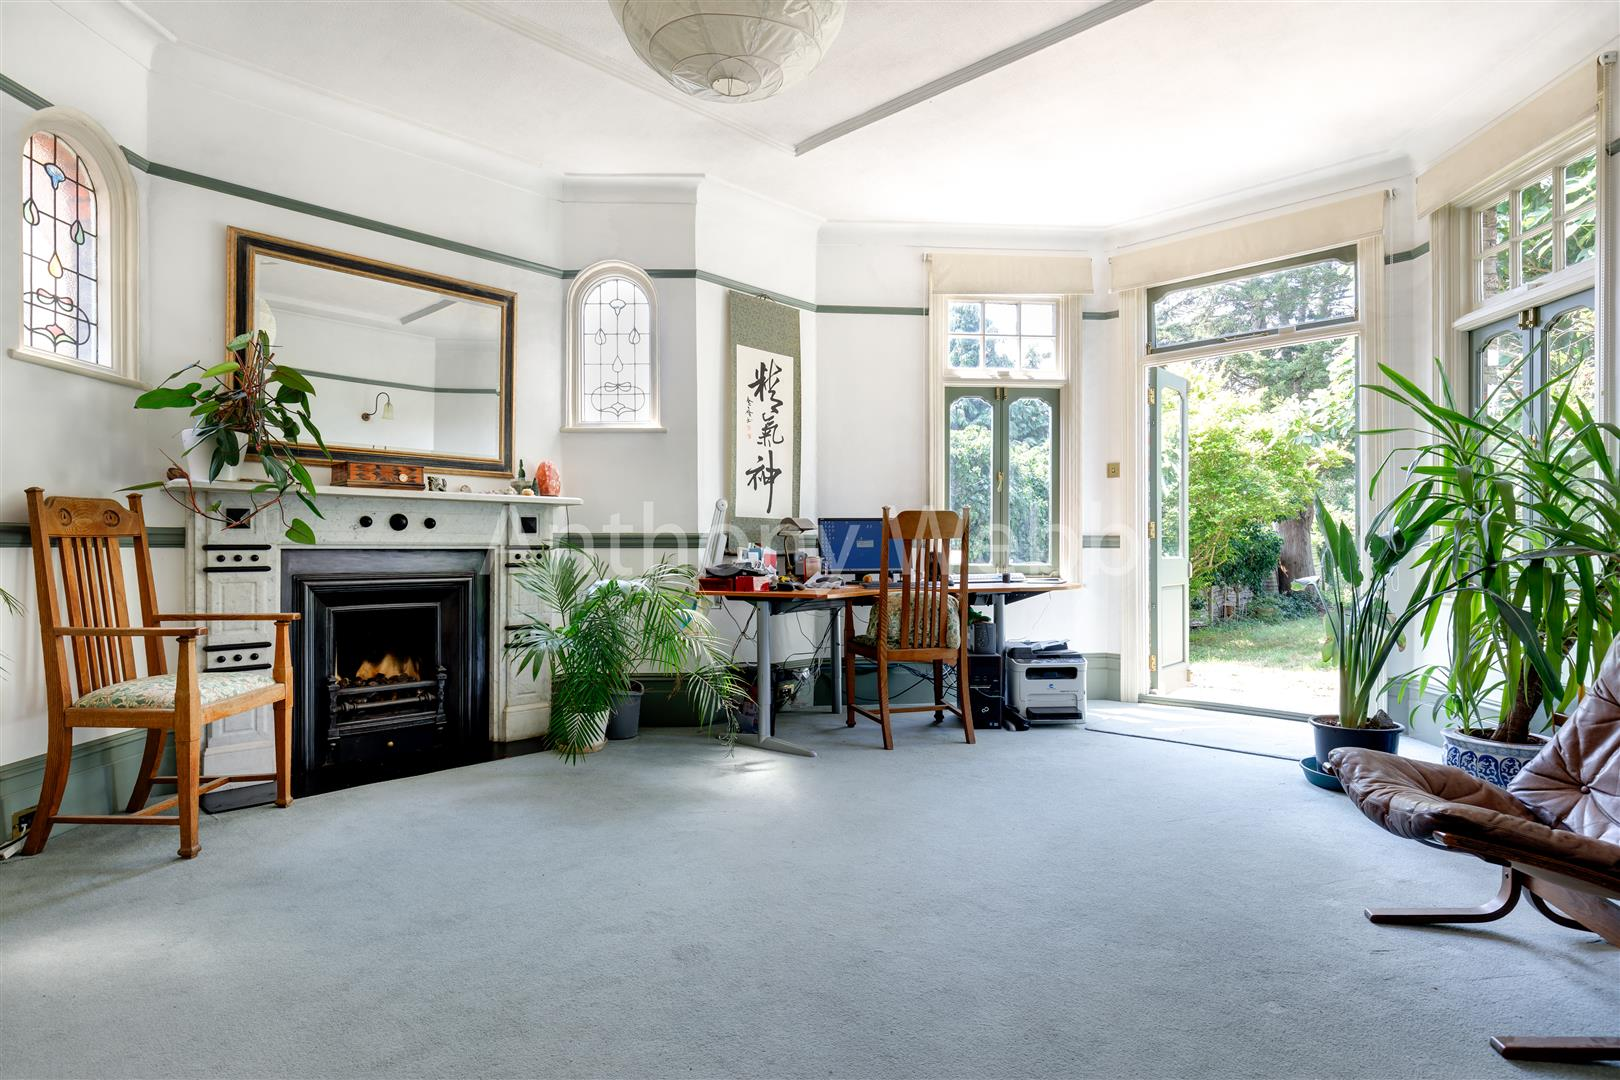 4 Bedrooms House for sale in Fox Lane, London